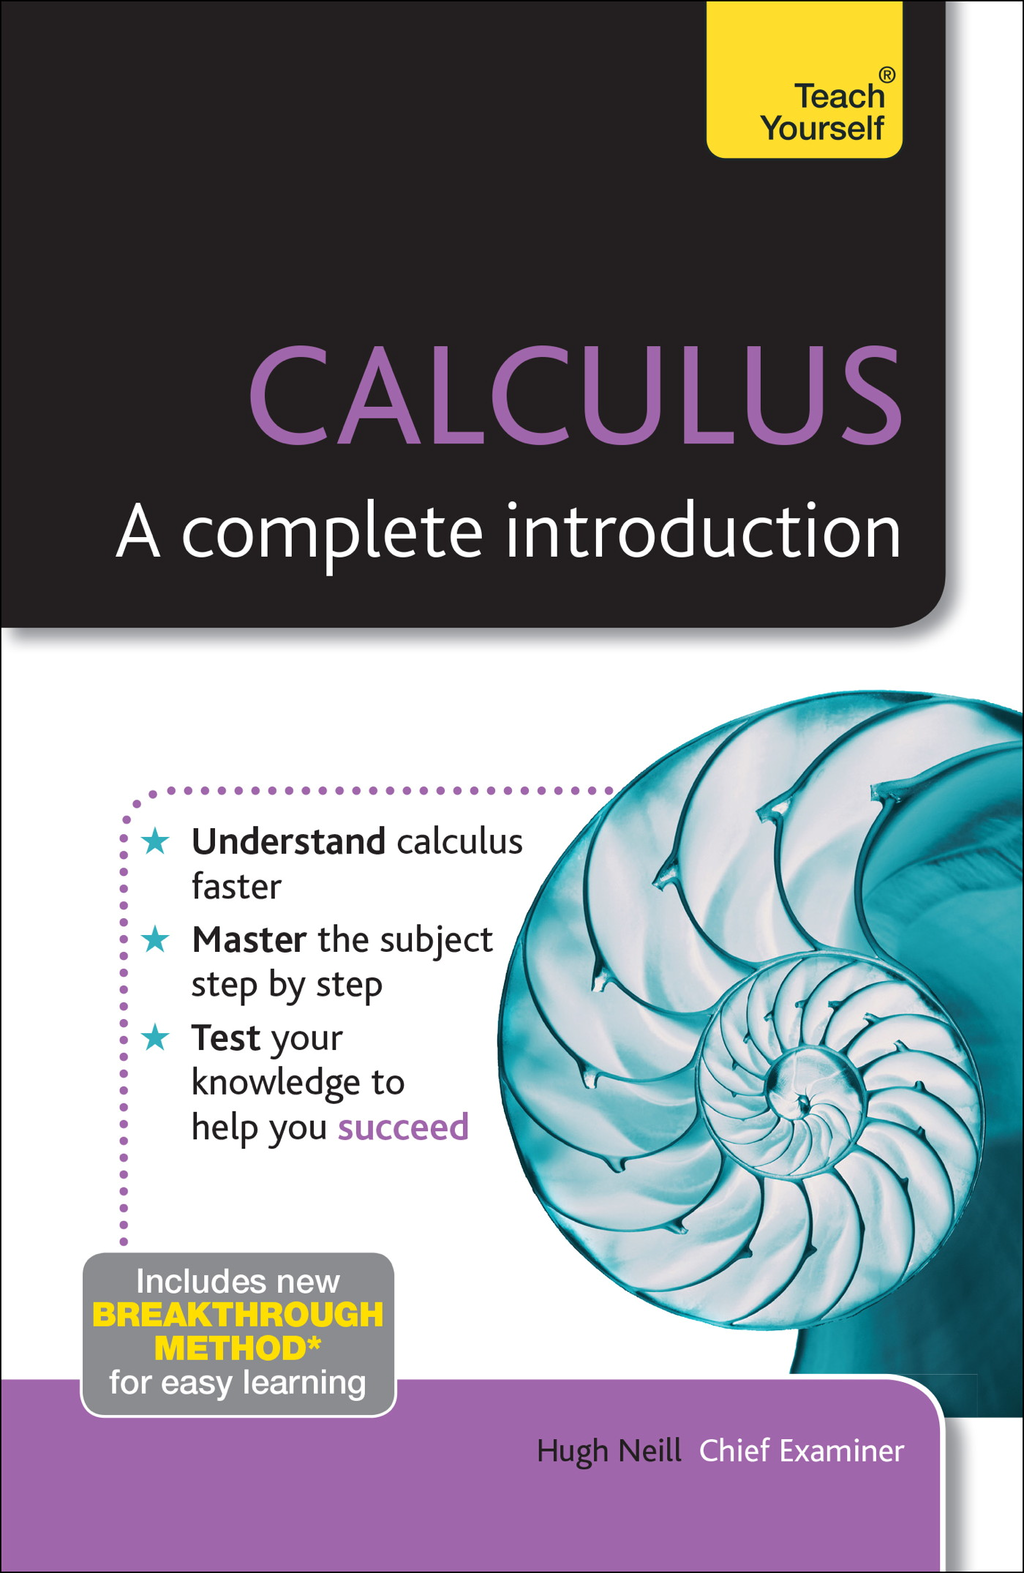 Calculus - A Complete Introduction: Teach Yourself